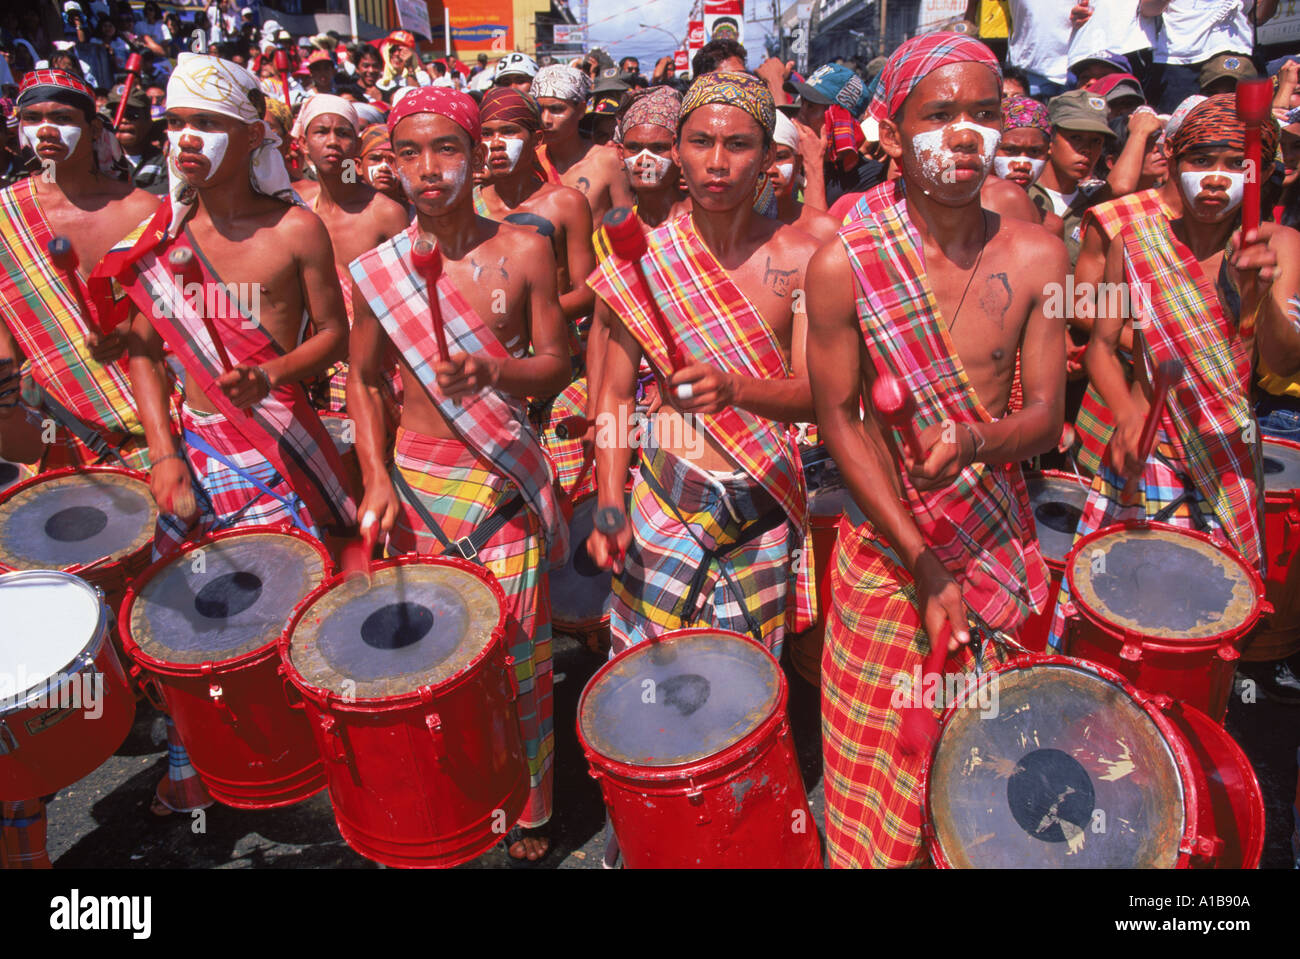 Portrait of a group of drummers during the Mardi Gras carnival Dinagyant in Iloilo City Panay Island Philippines Asia A Evrard - Stock Image